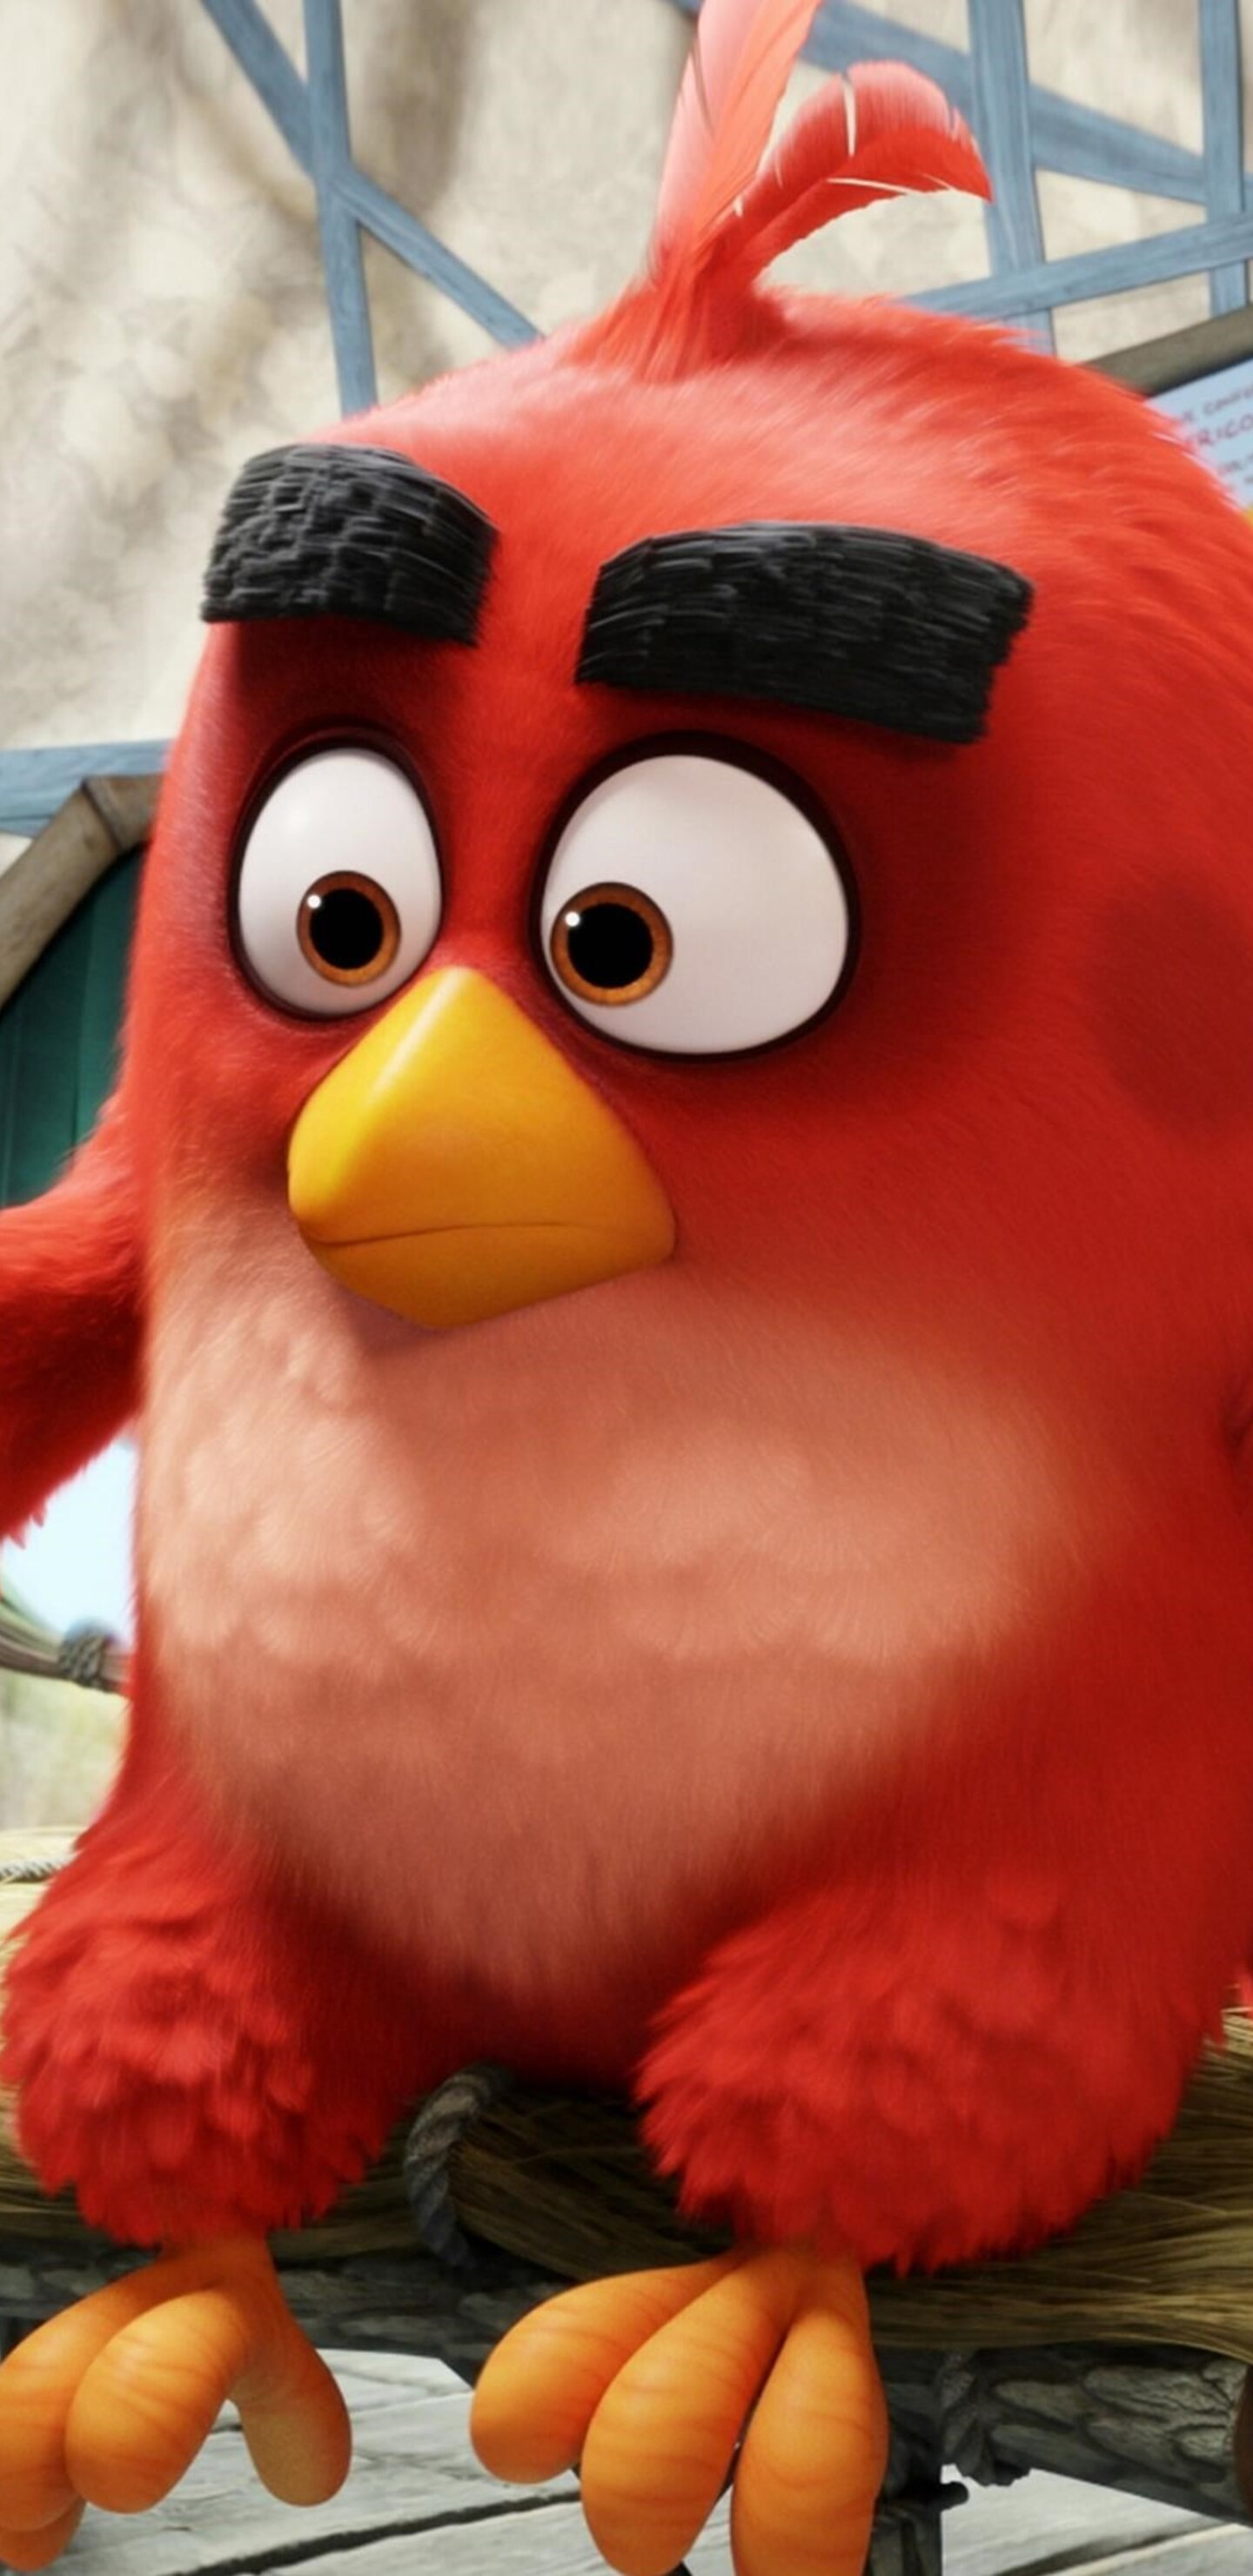 1440x2960 Red The Angry Birds Samsung Galaxy Note 9 8 S9 S8 S8 Qhd Hd 4k Wallpapers Images Backgrounds Photos And Pictures